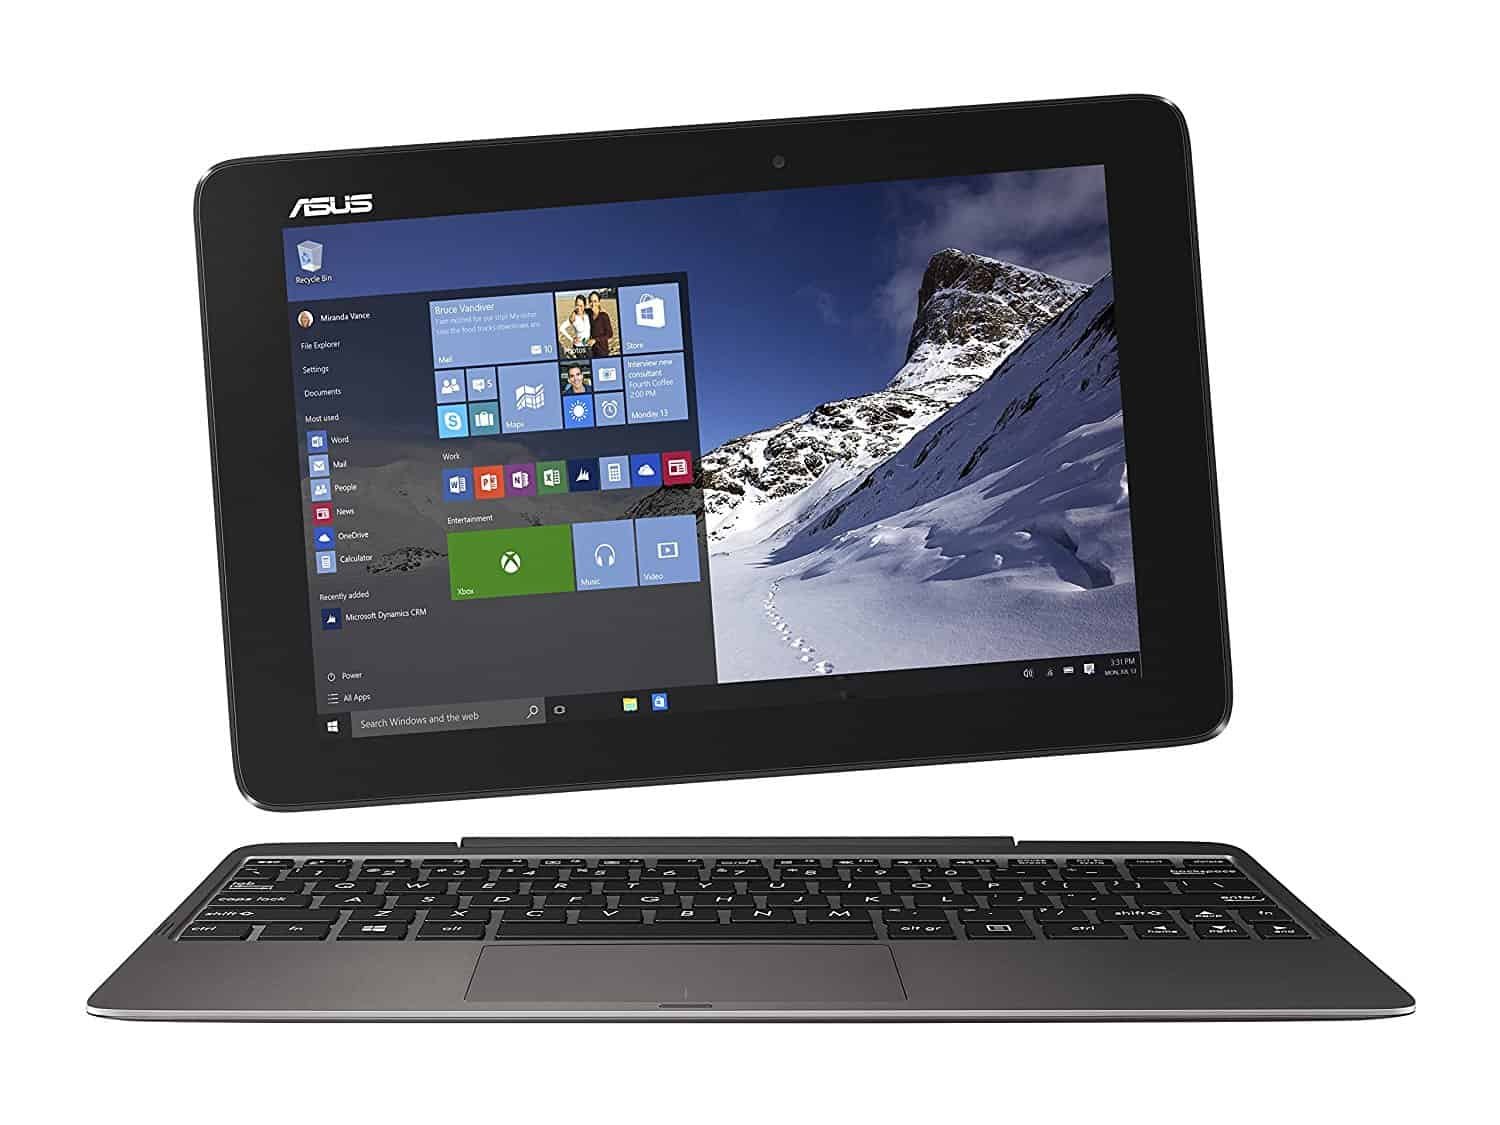 ASUS Transformer Book Review